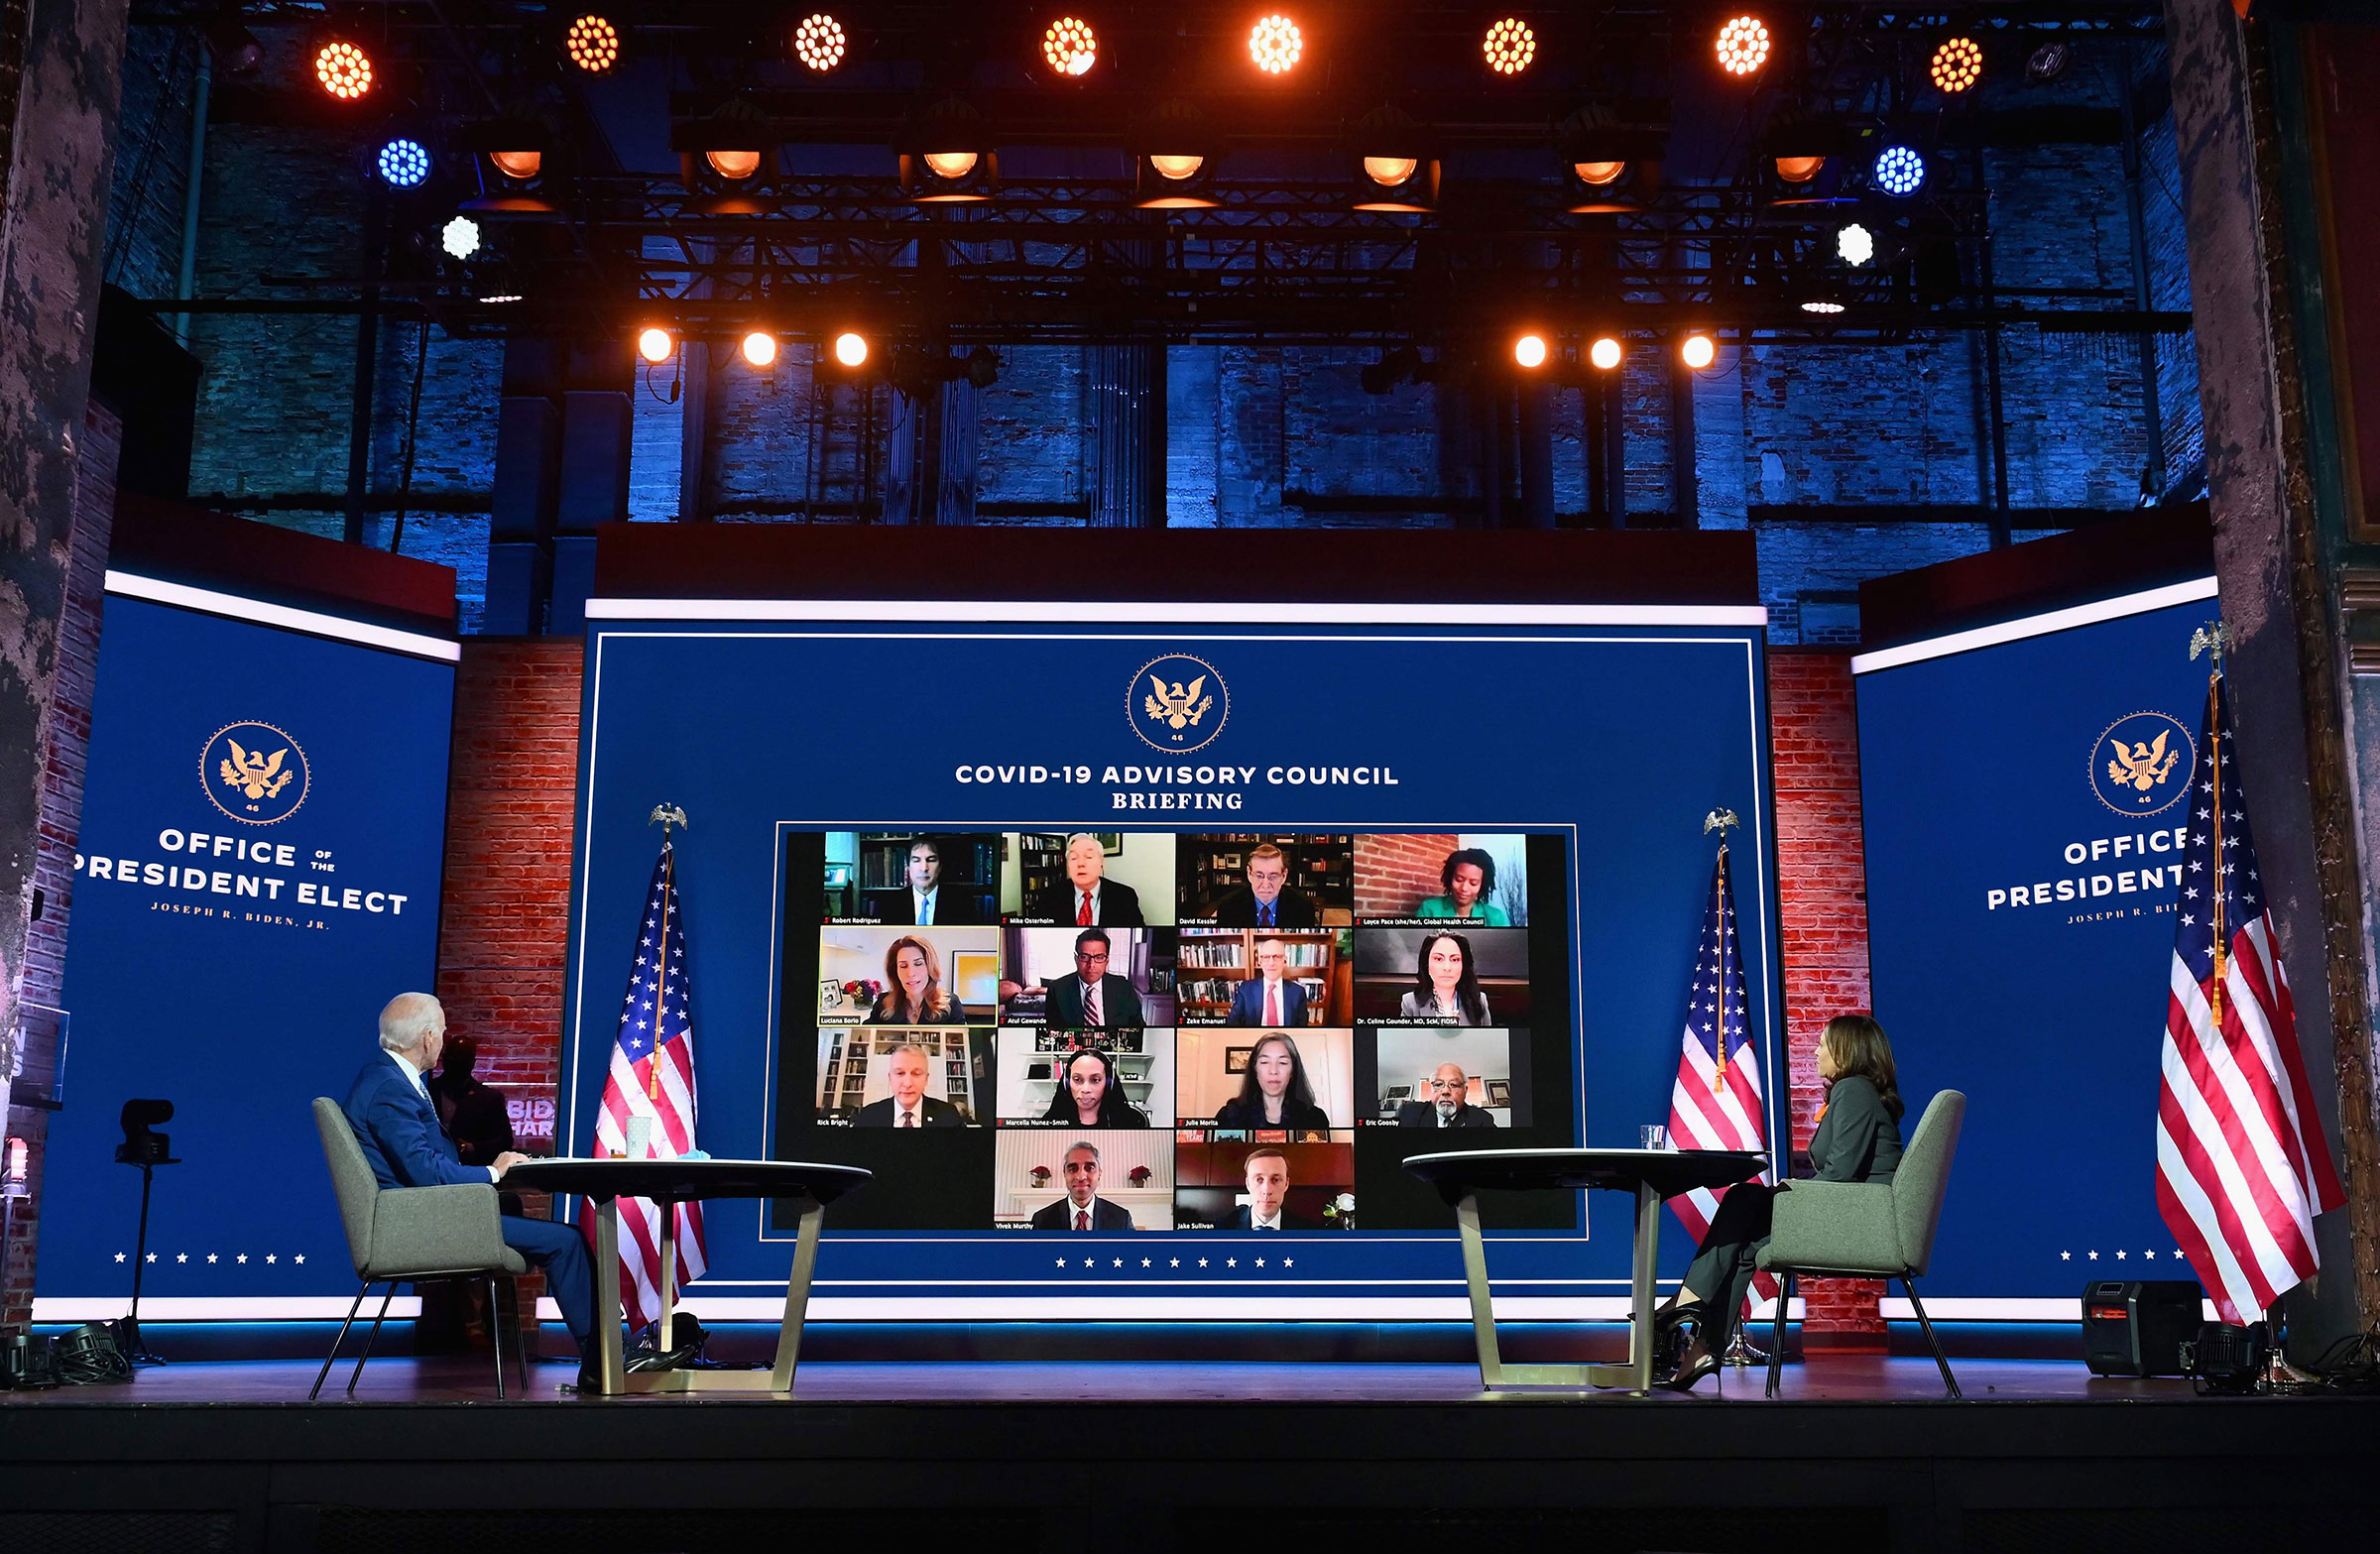 President-elect Joe Biden and Vice President-elect Kamala Harris speak virtually with the Covid-19 Advisory Council during a briefing at The Queen theatre on Nov. 9, 2020 in Wilmington, Del.